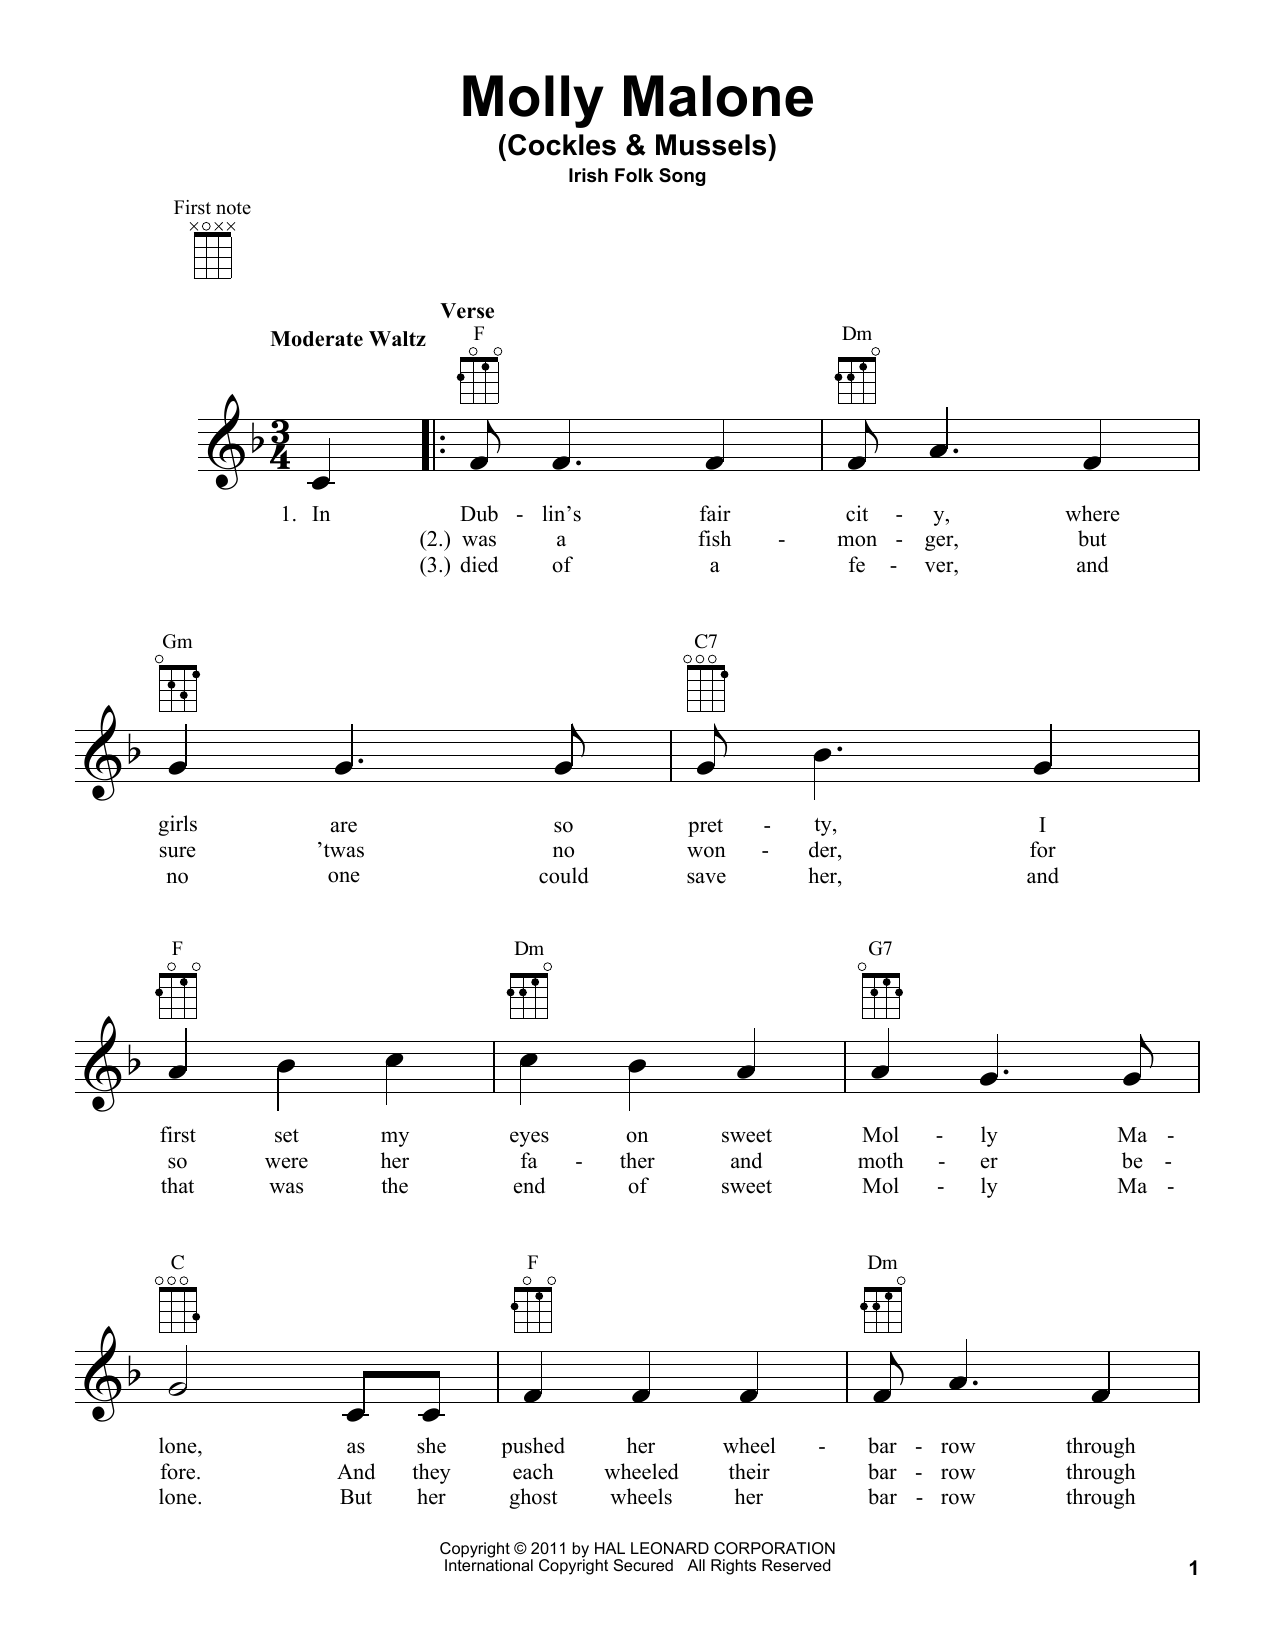 Molly Malone (Cockles & Mussels) Sheet Music